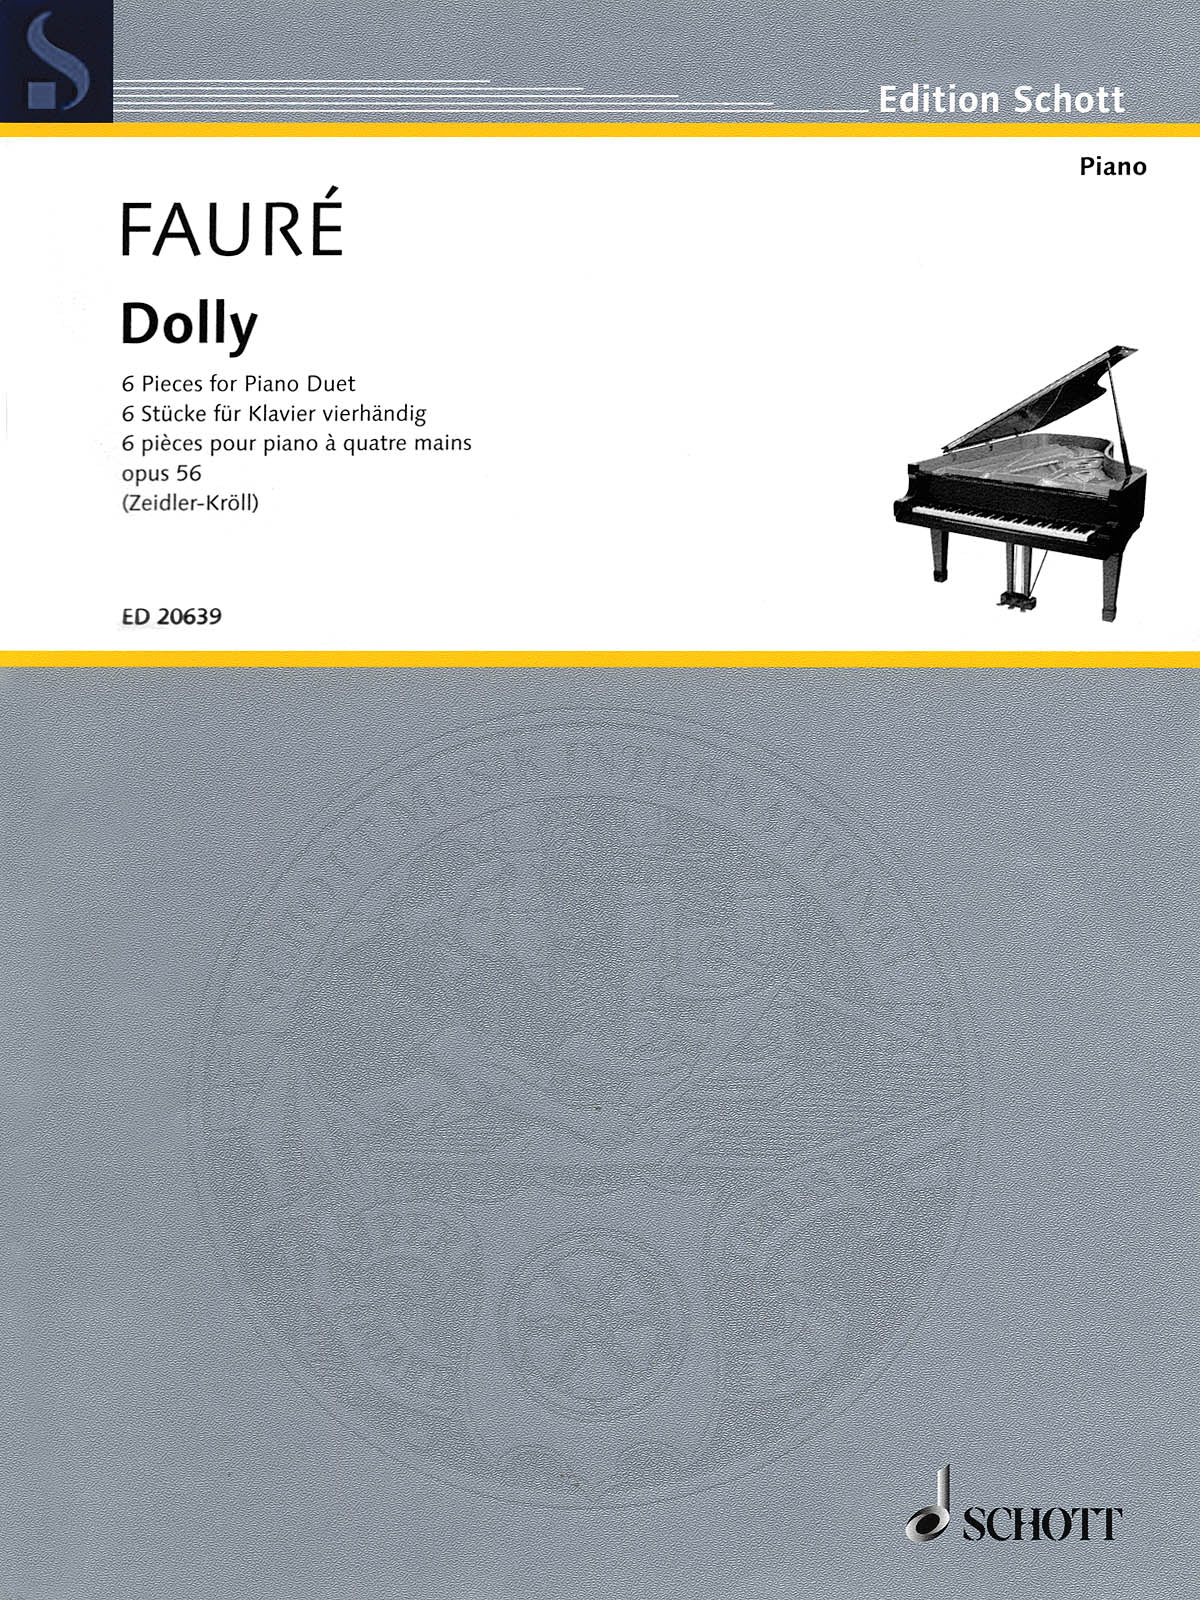 Fauré: Dolly, Op. 56 (piano, 4-hands)